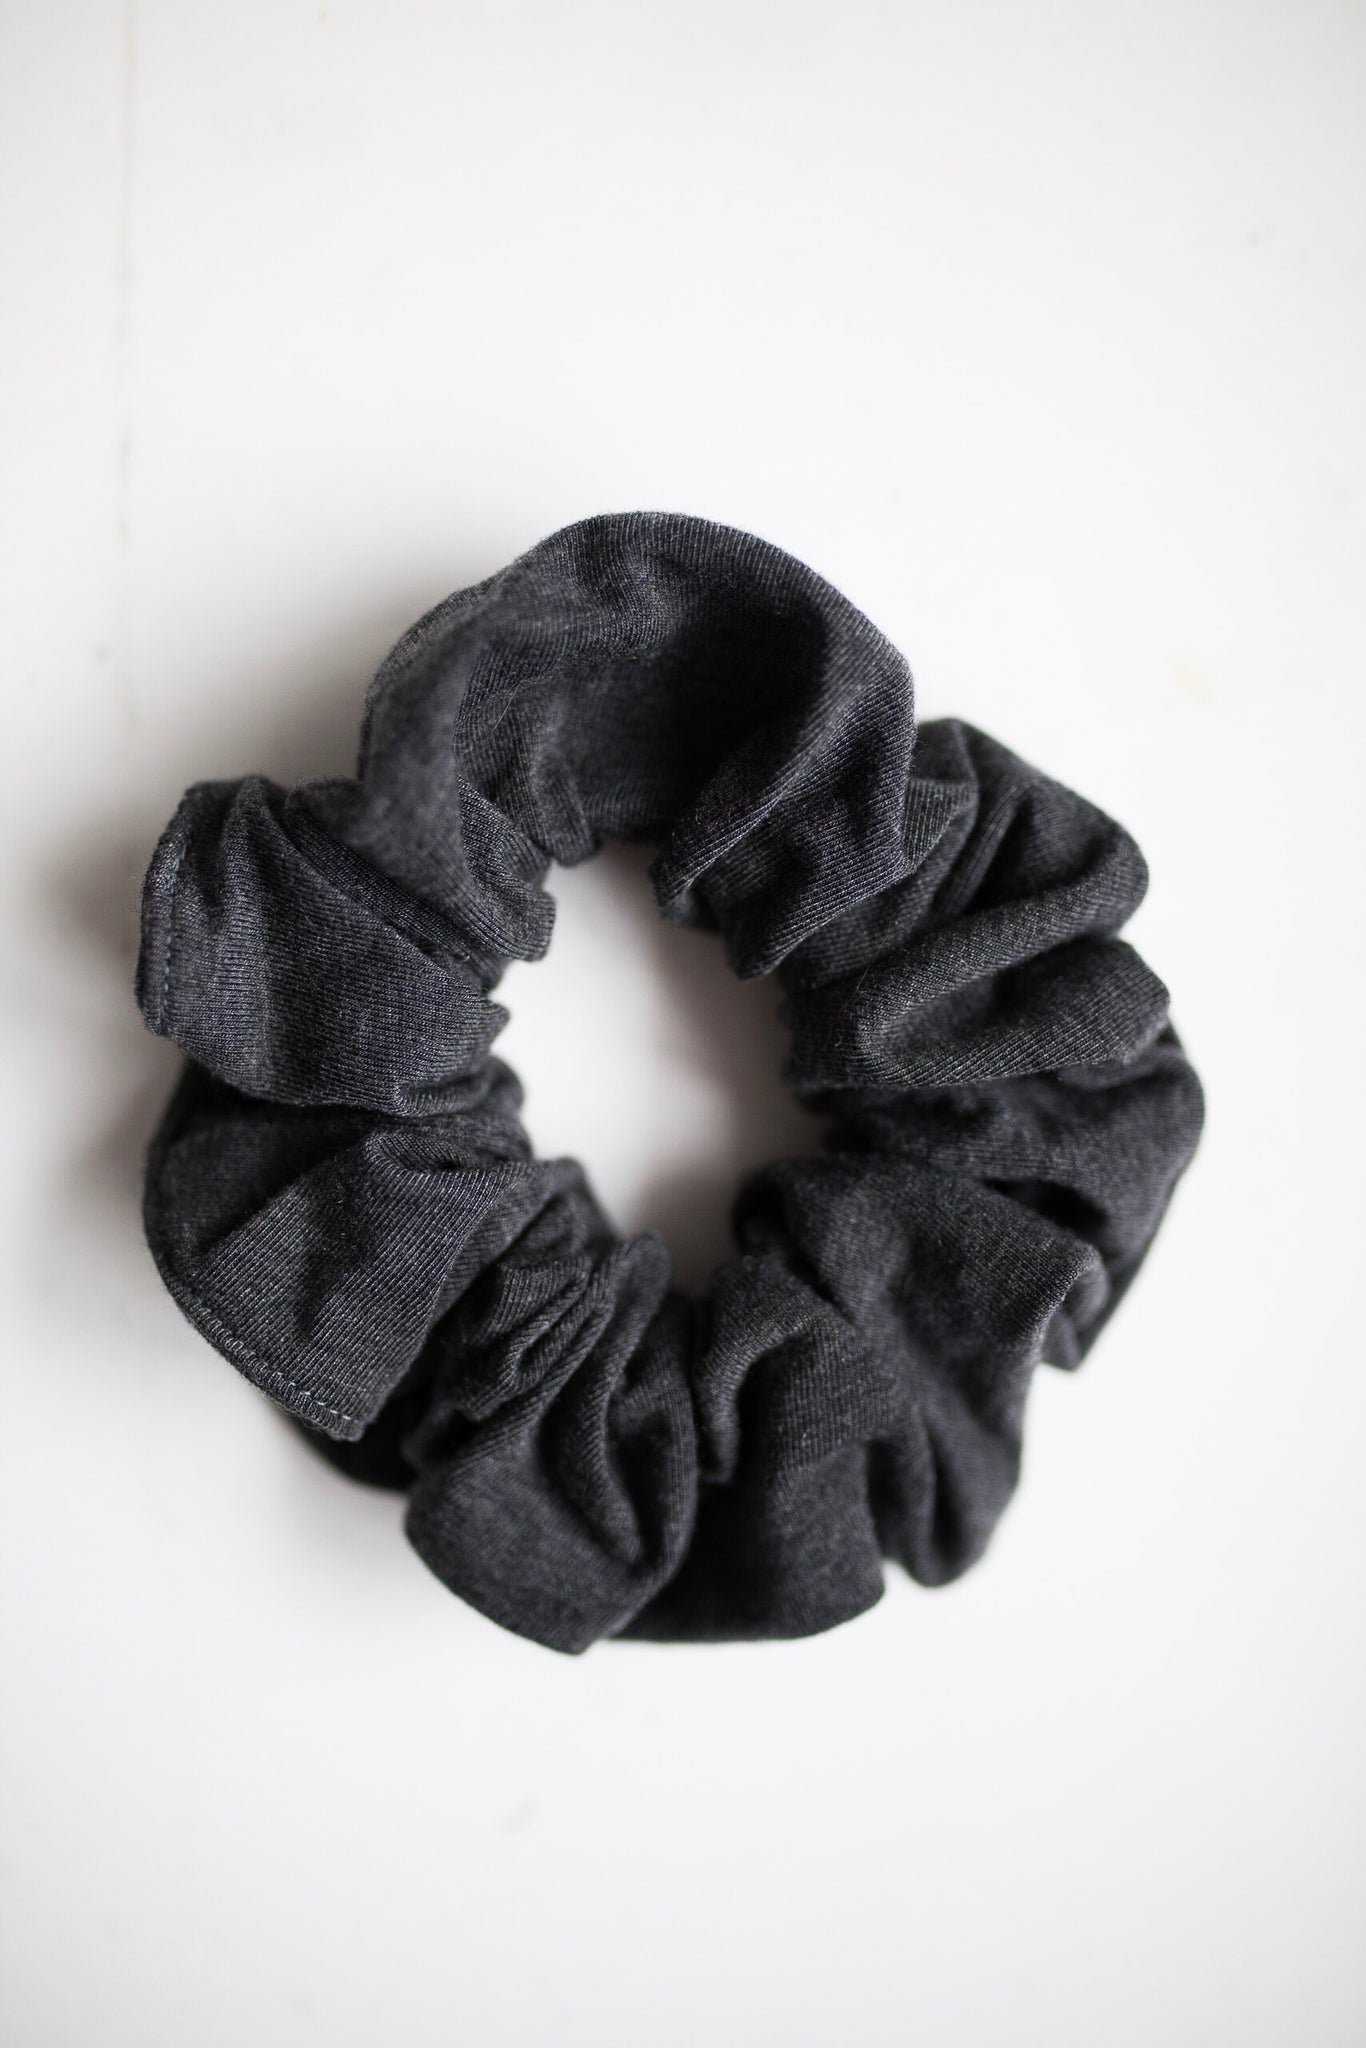 The Gym - Heather Charcoal Grey Scrunchie